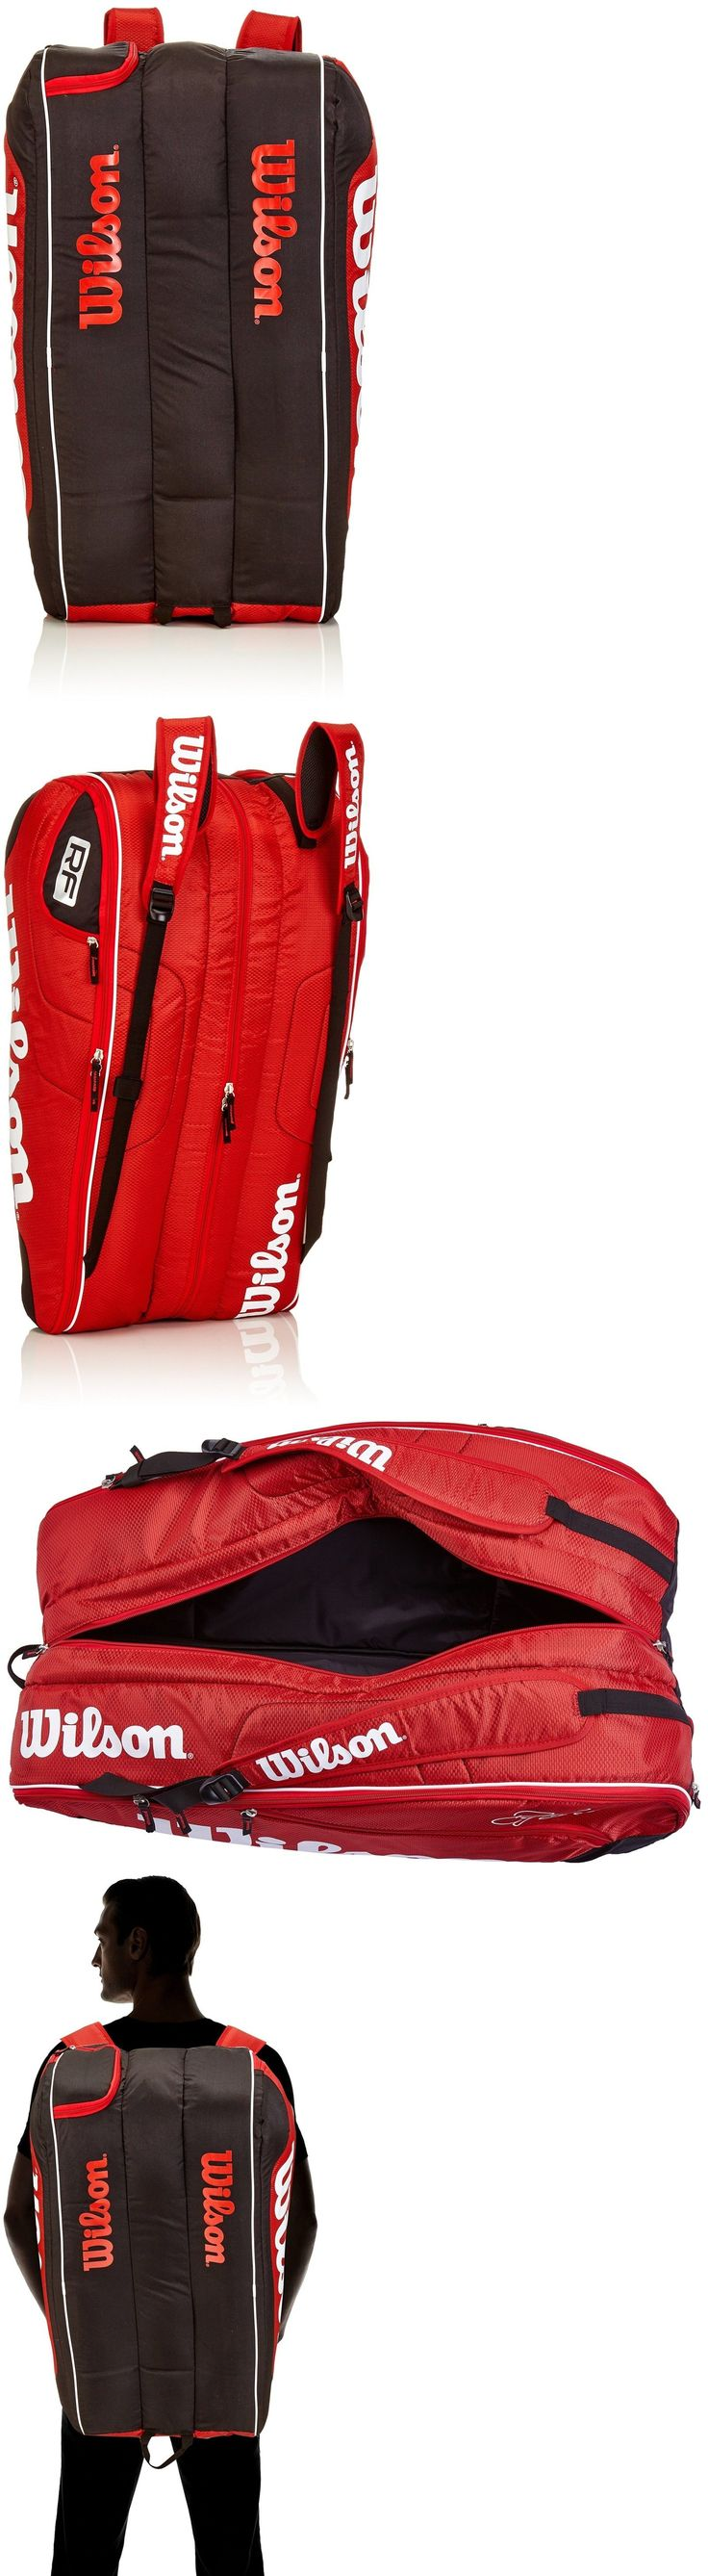 Bags 20869: Wilson Federer Team Iii 12-Pack Red Tennis Bag, Red -> BUY IT NOW ONLY: $76.98 on eBay!